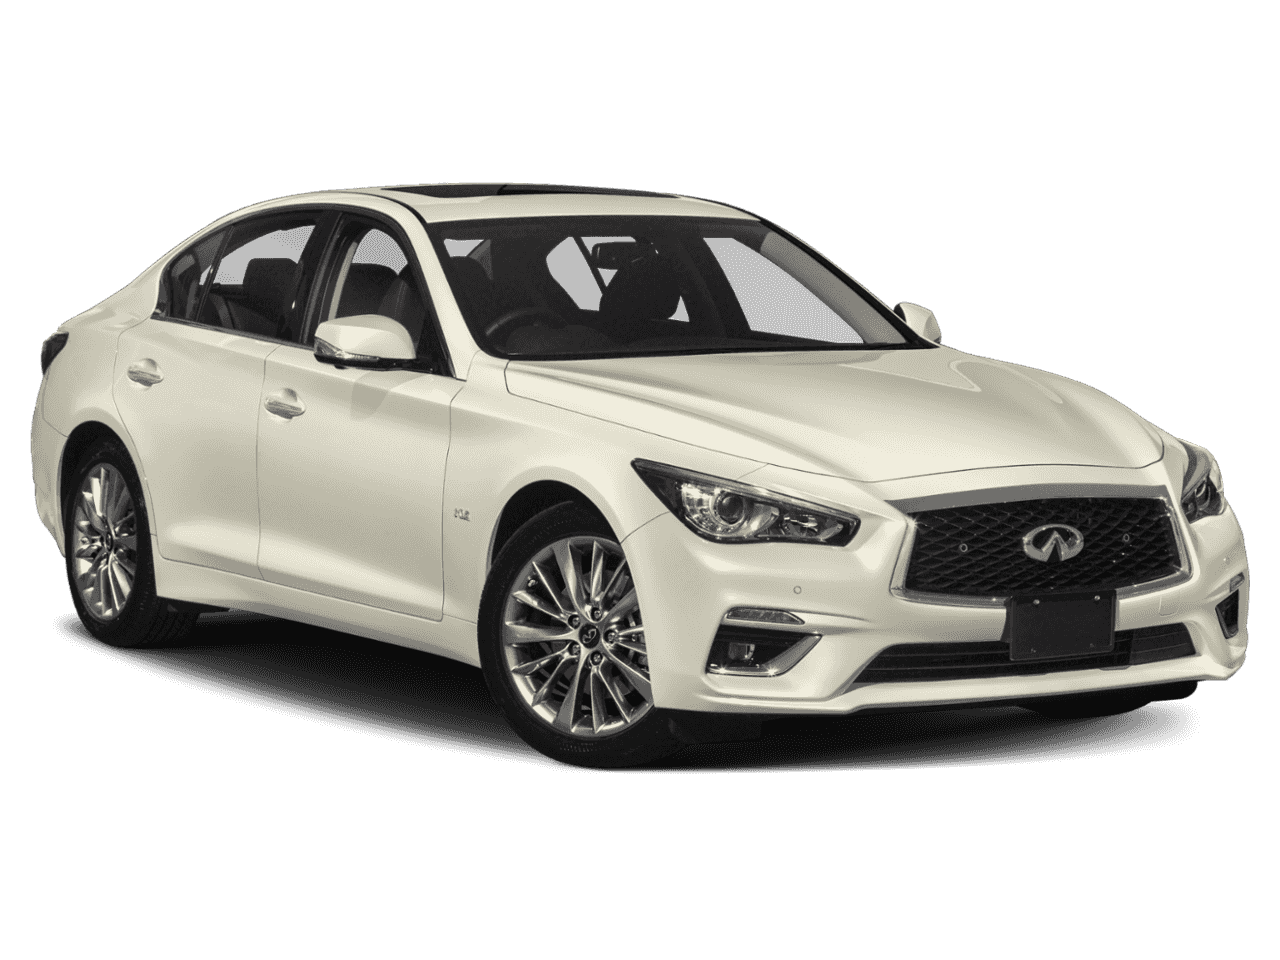 53 New 2019 Infiniti Vehicles Picture Style with 2019 Infiniti Vehicles Picture